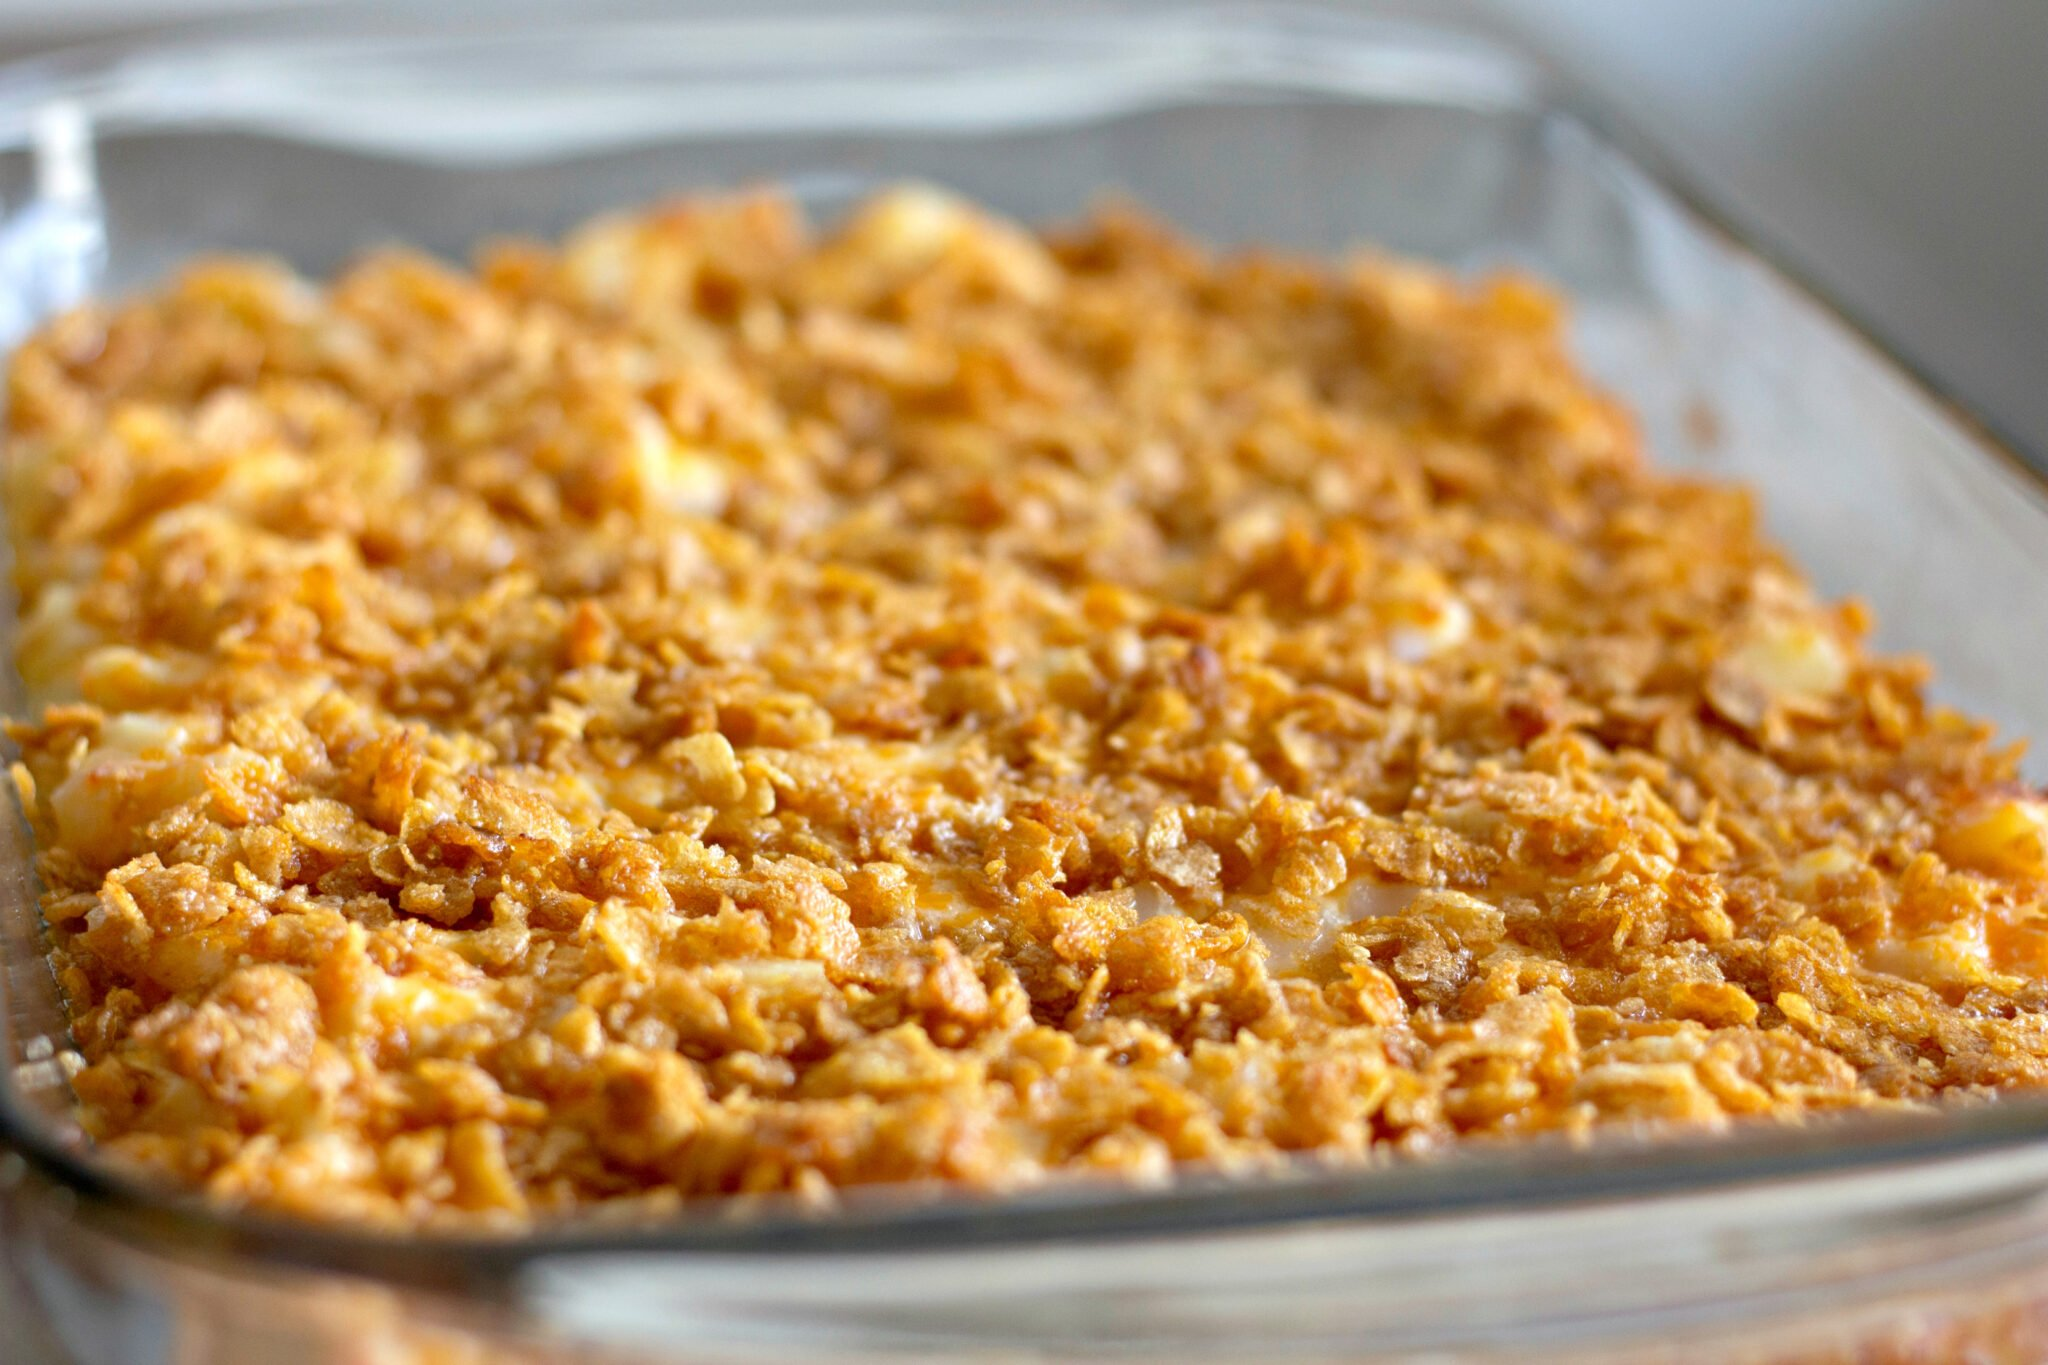 A pan of cheesy potatoes topped with buttered, crushed cornflakes.